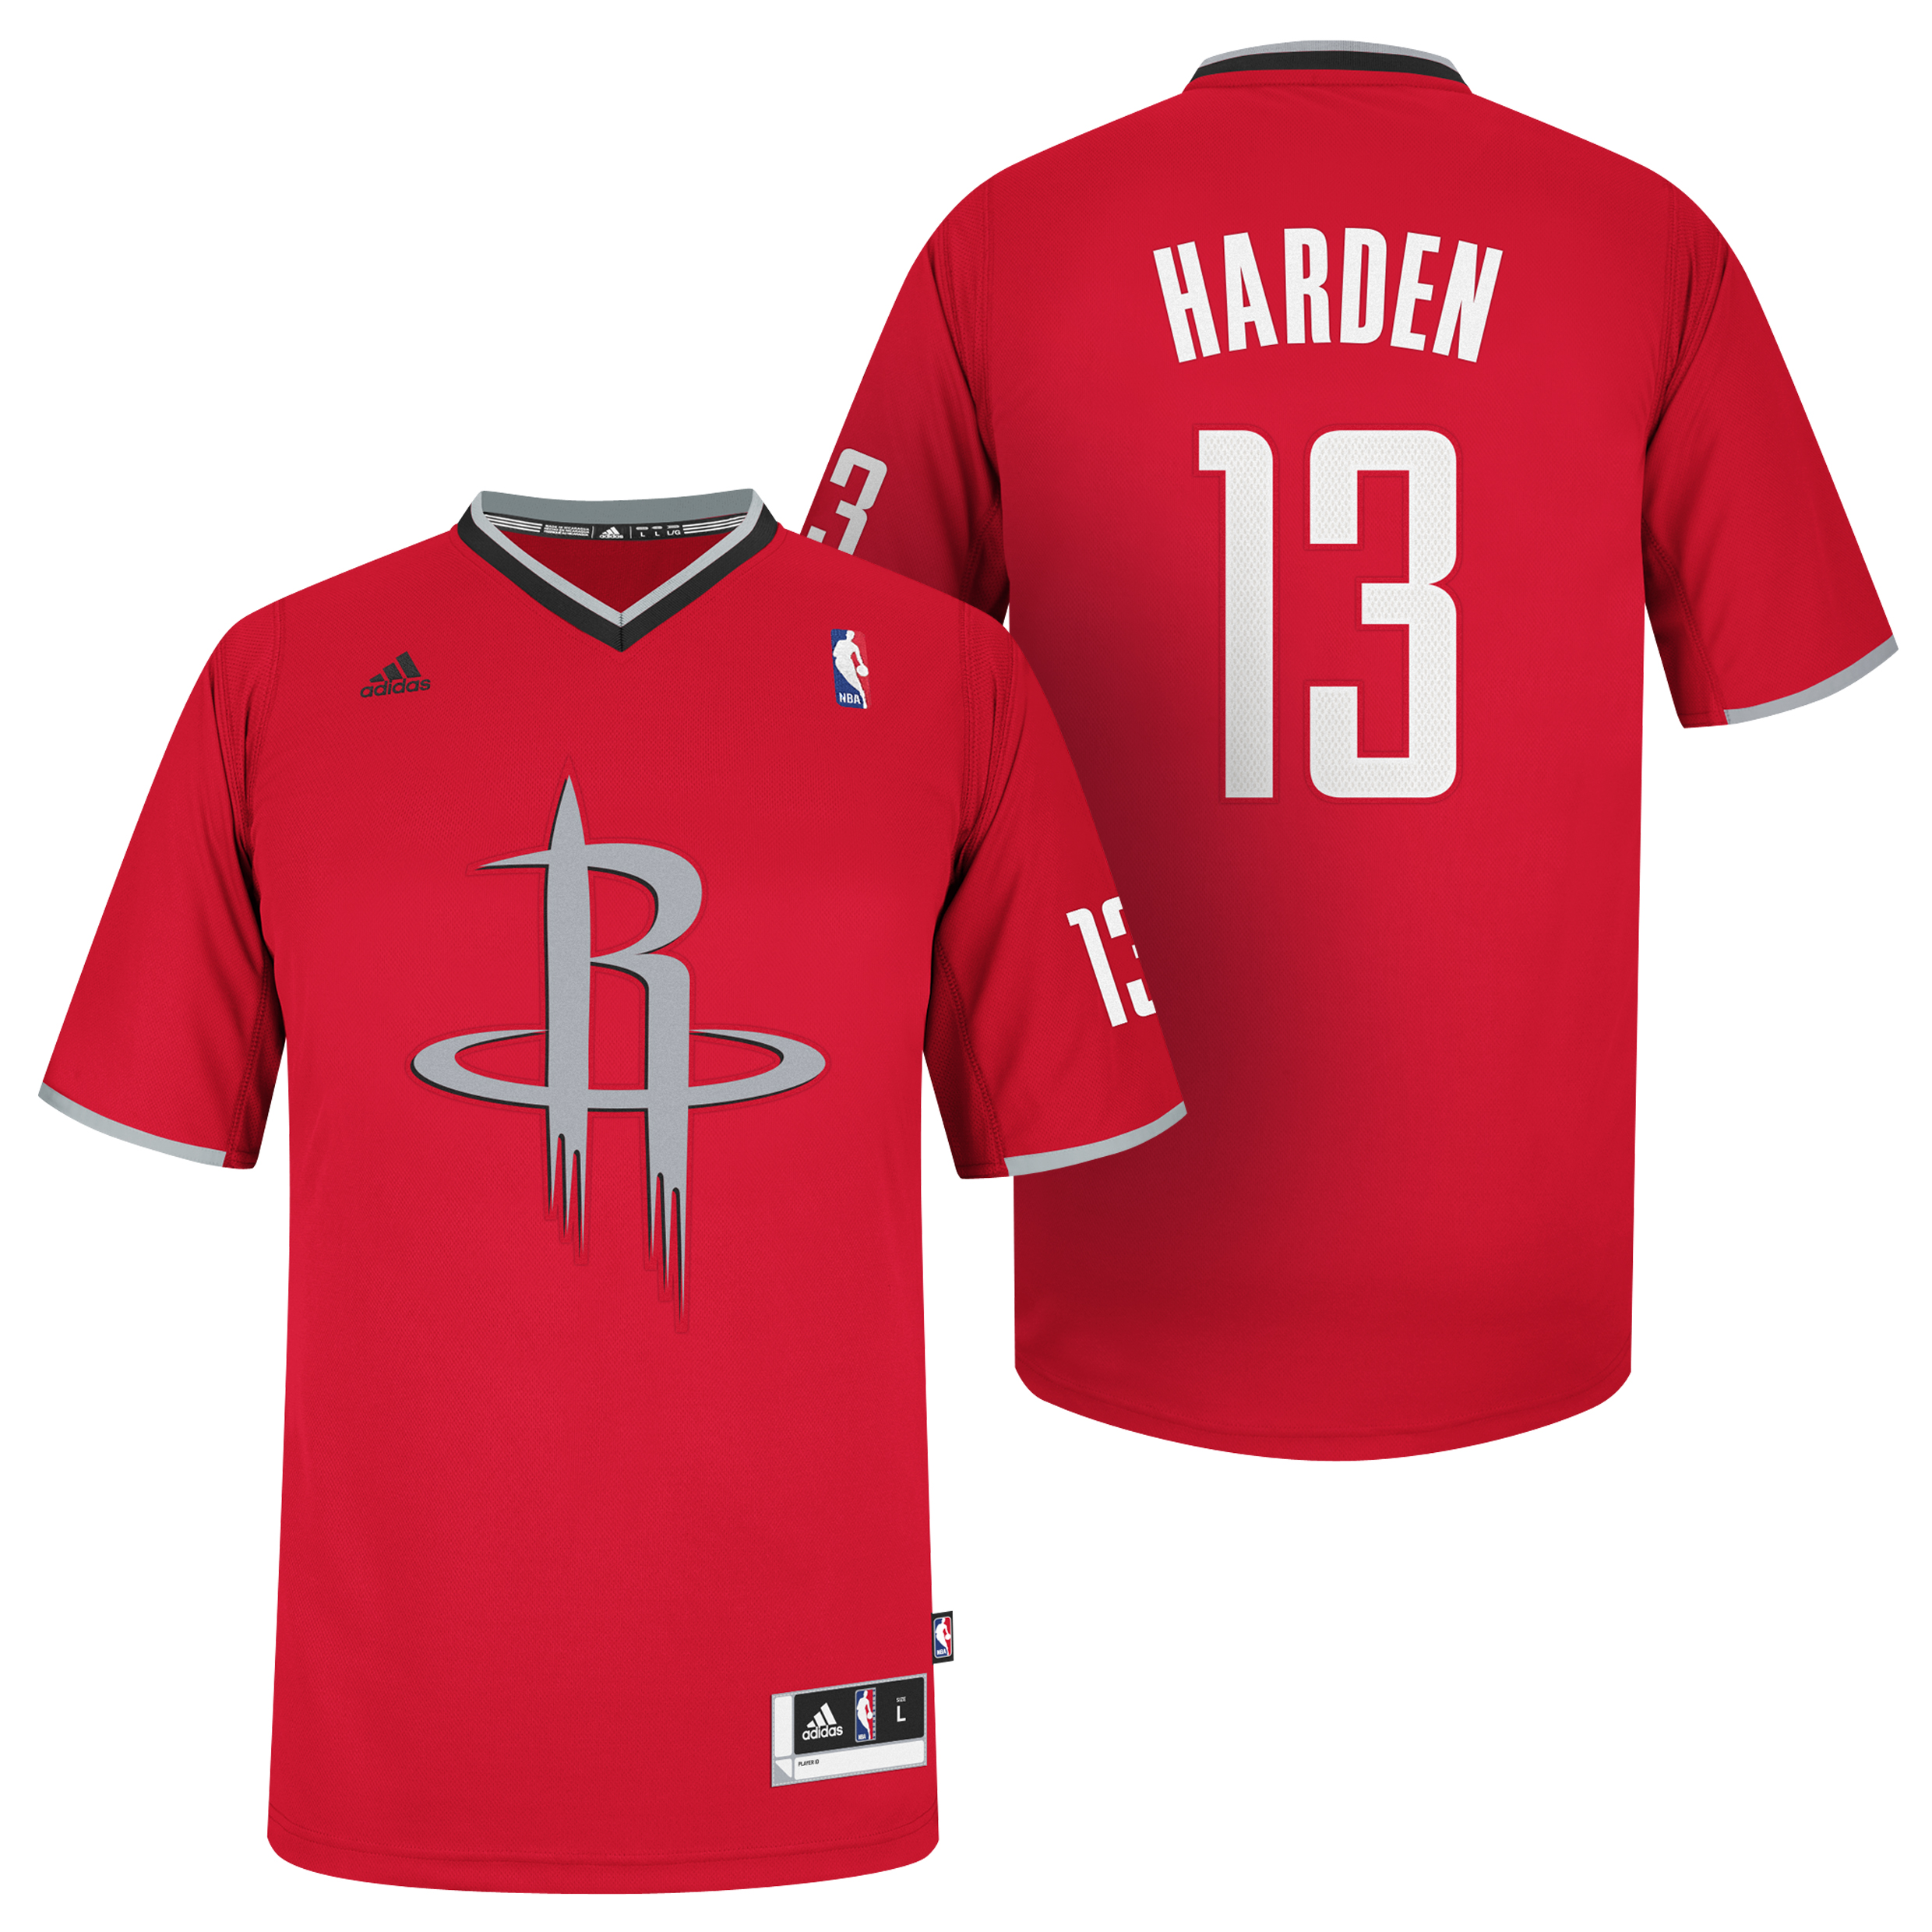 Houston Rockets X-mas Big Logo Swingman Jersey - James Harden